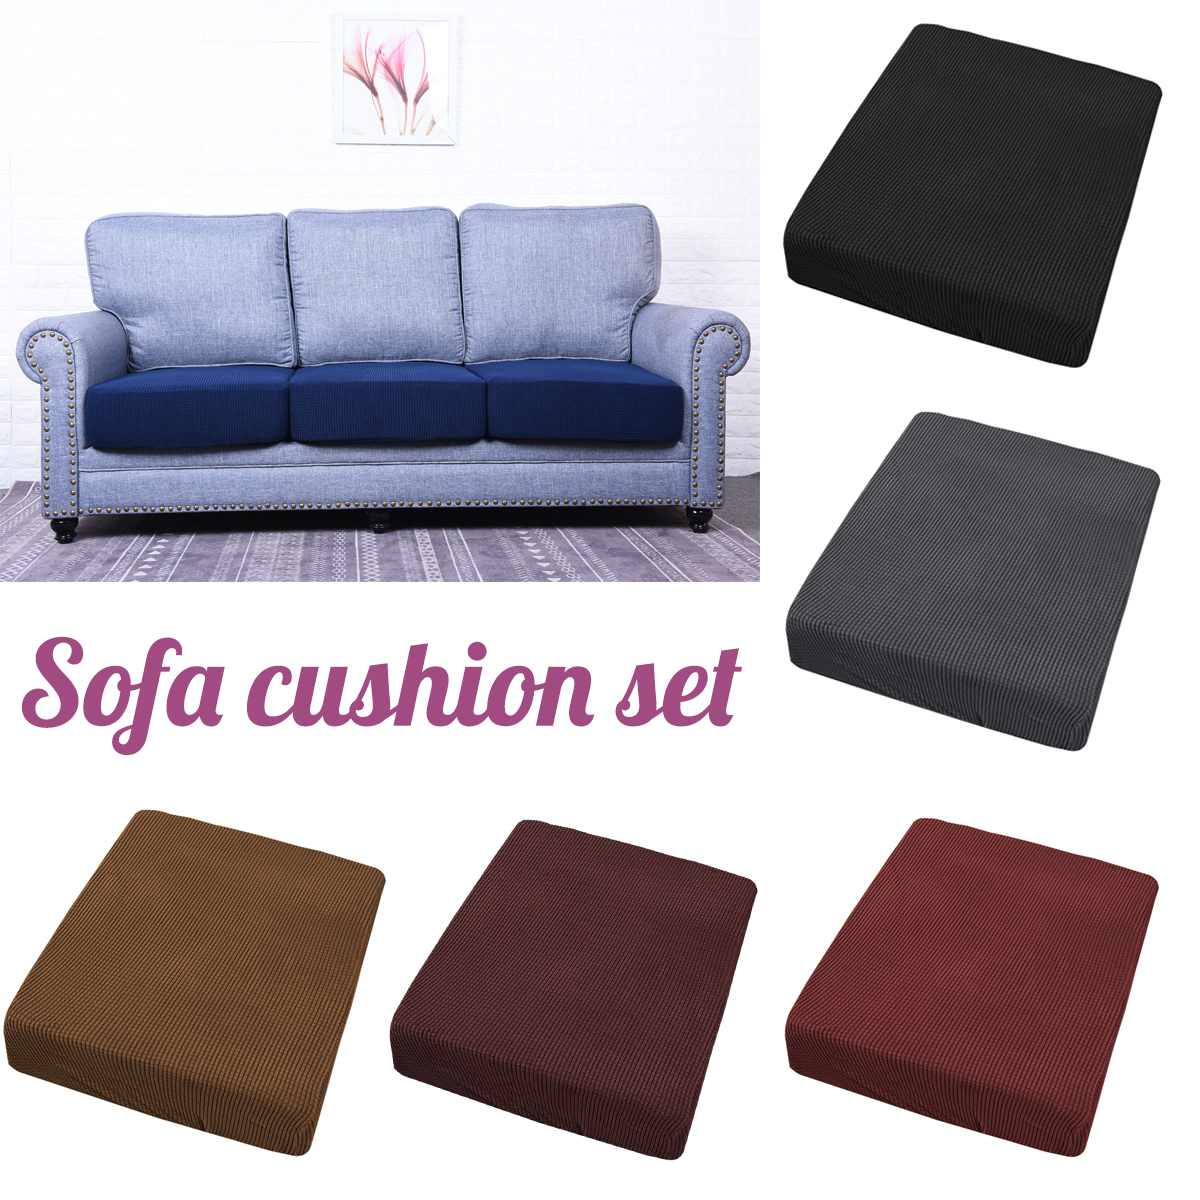 Aliexpress.com : Buy Nordic Decorative Pillows Seat